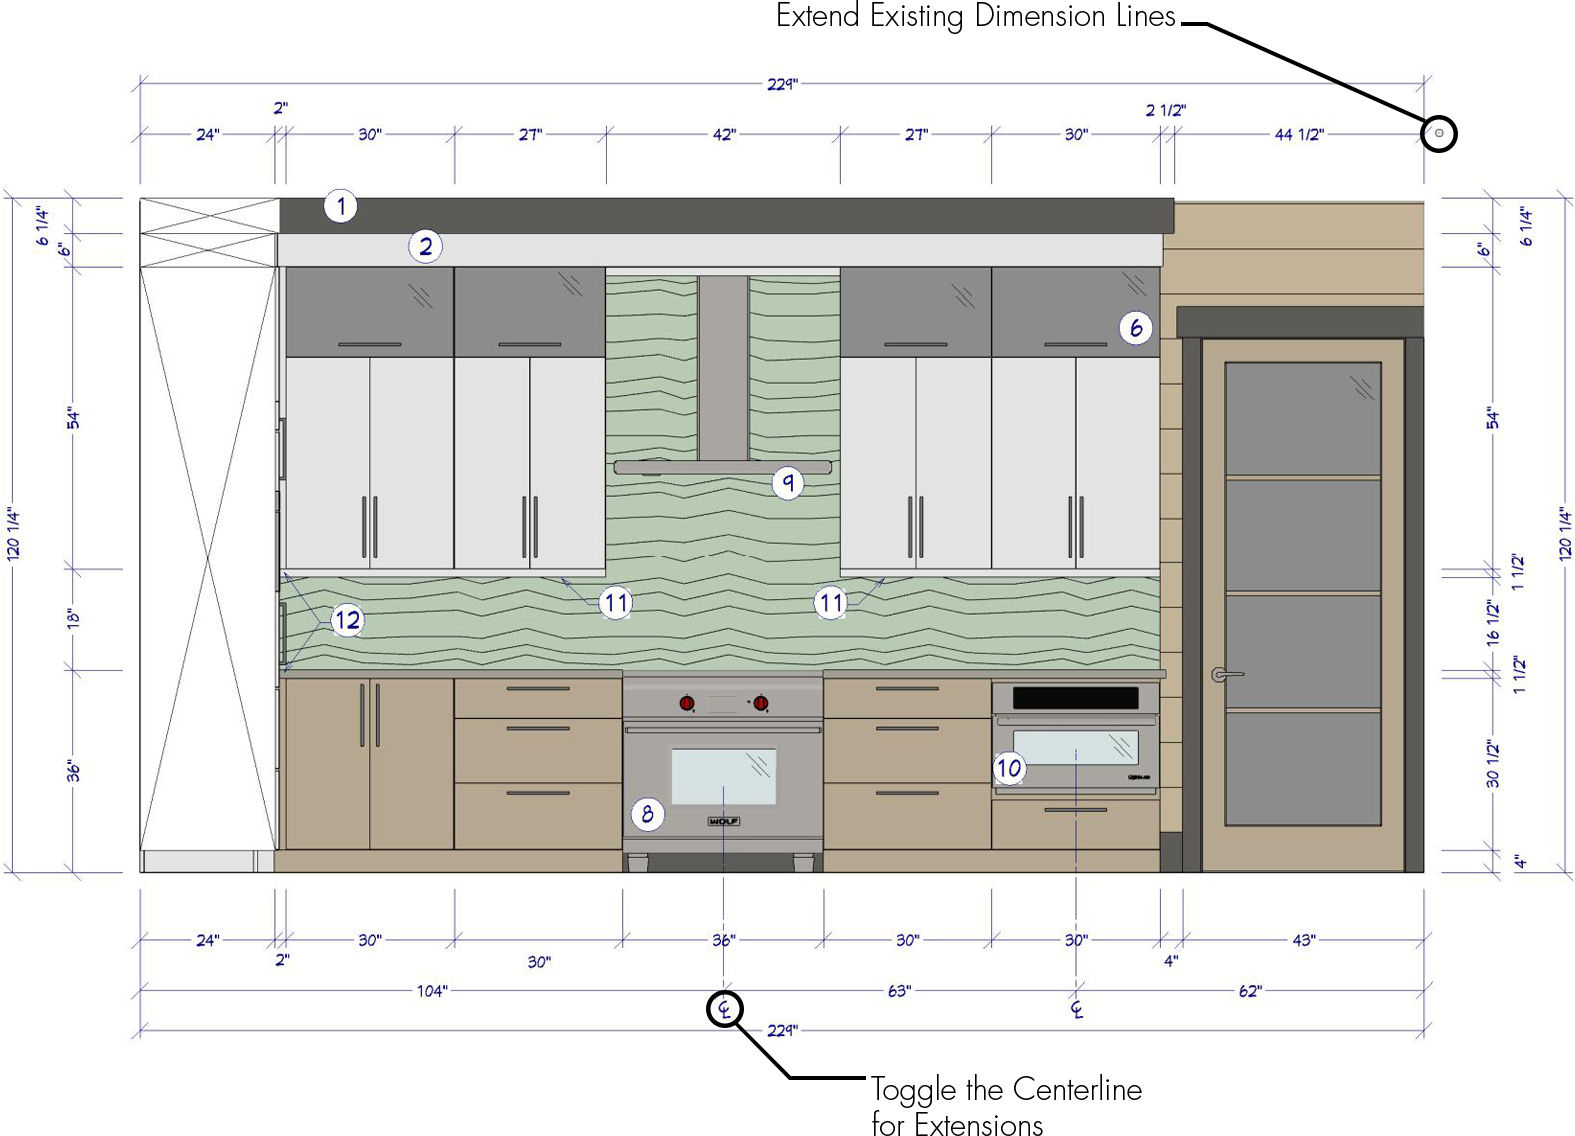 A wall elevation of a kitchen with dimensions.